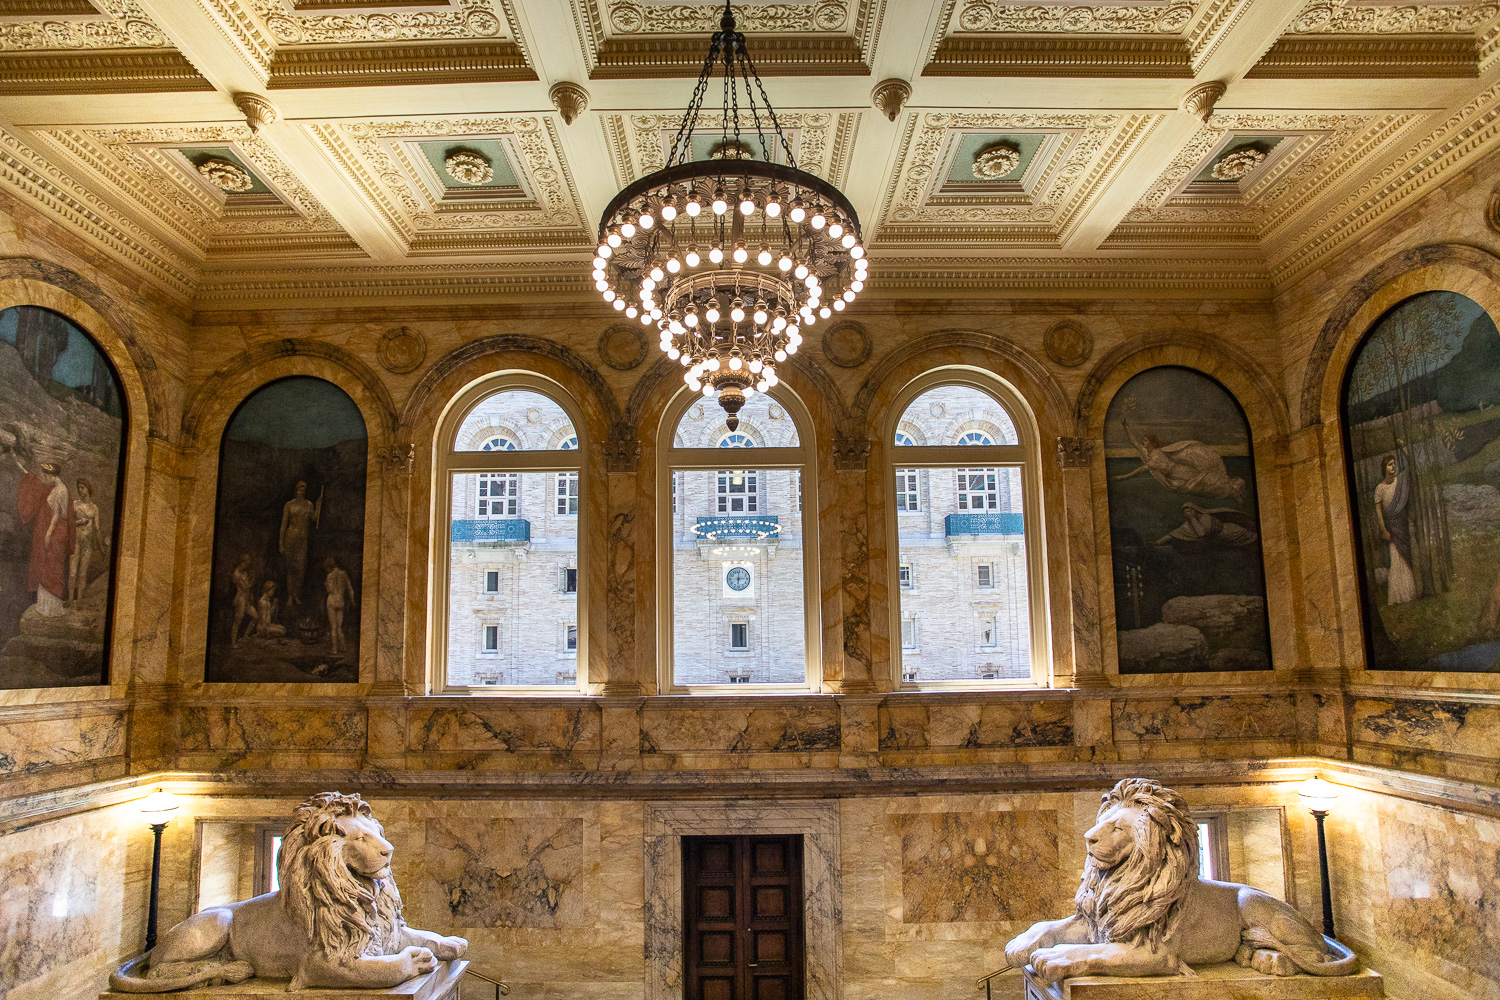 The lion sculptures in front of the grand staircase in the Boston Public Library.